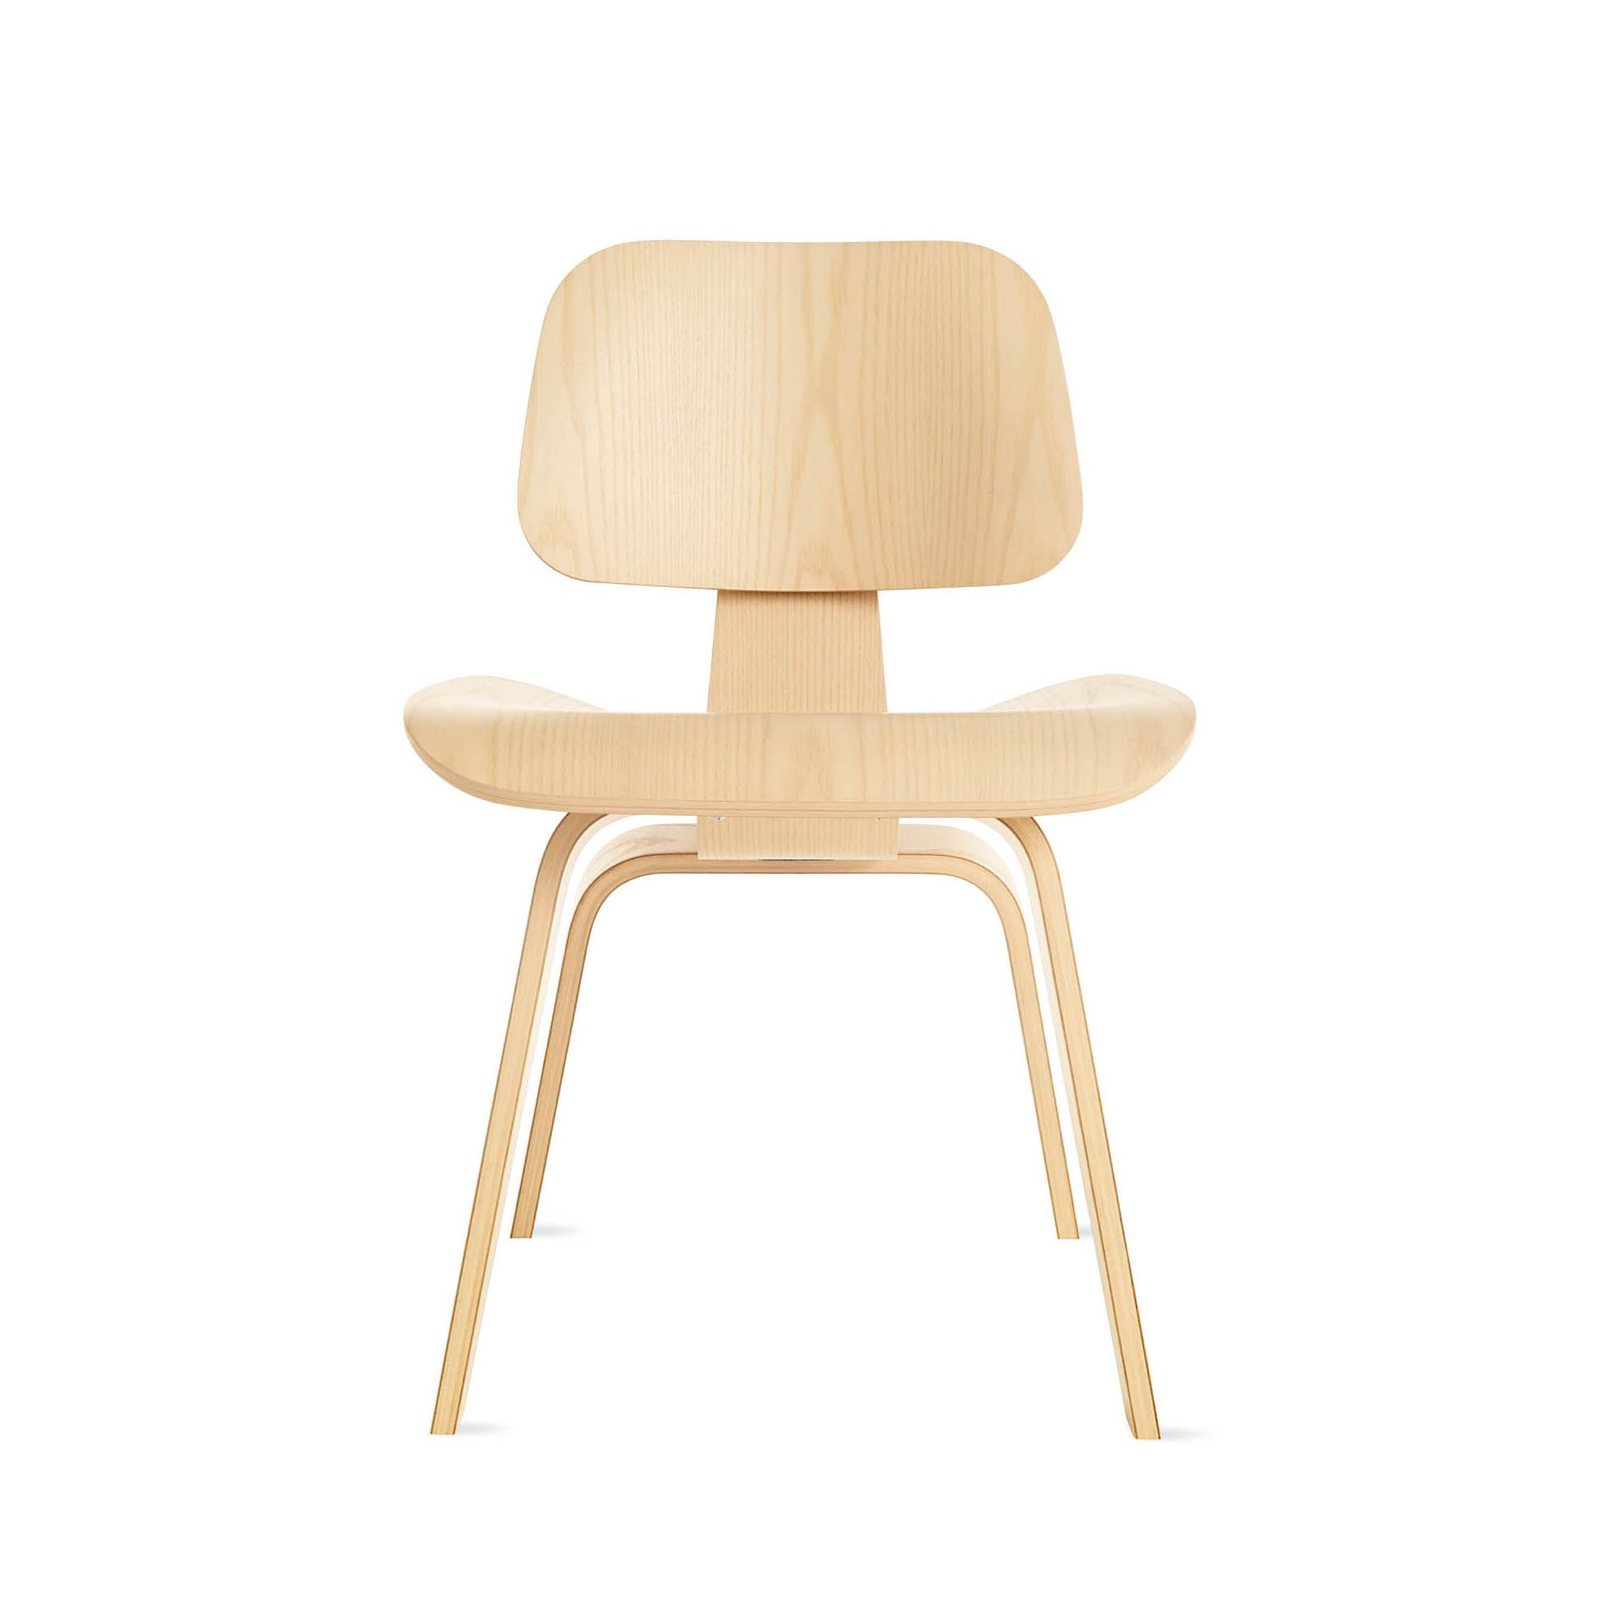 Charles And Ray Eames Chair Eames Molded Plywood Dining Chair Wood Base By Charles